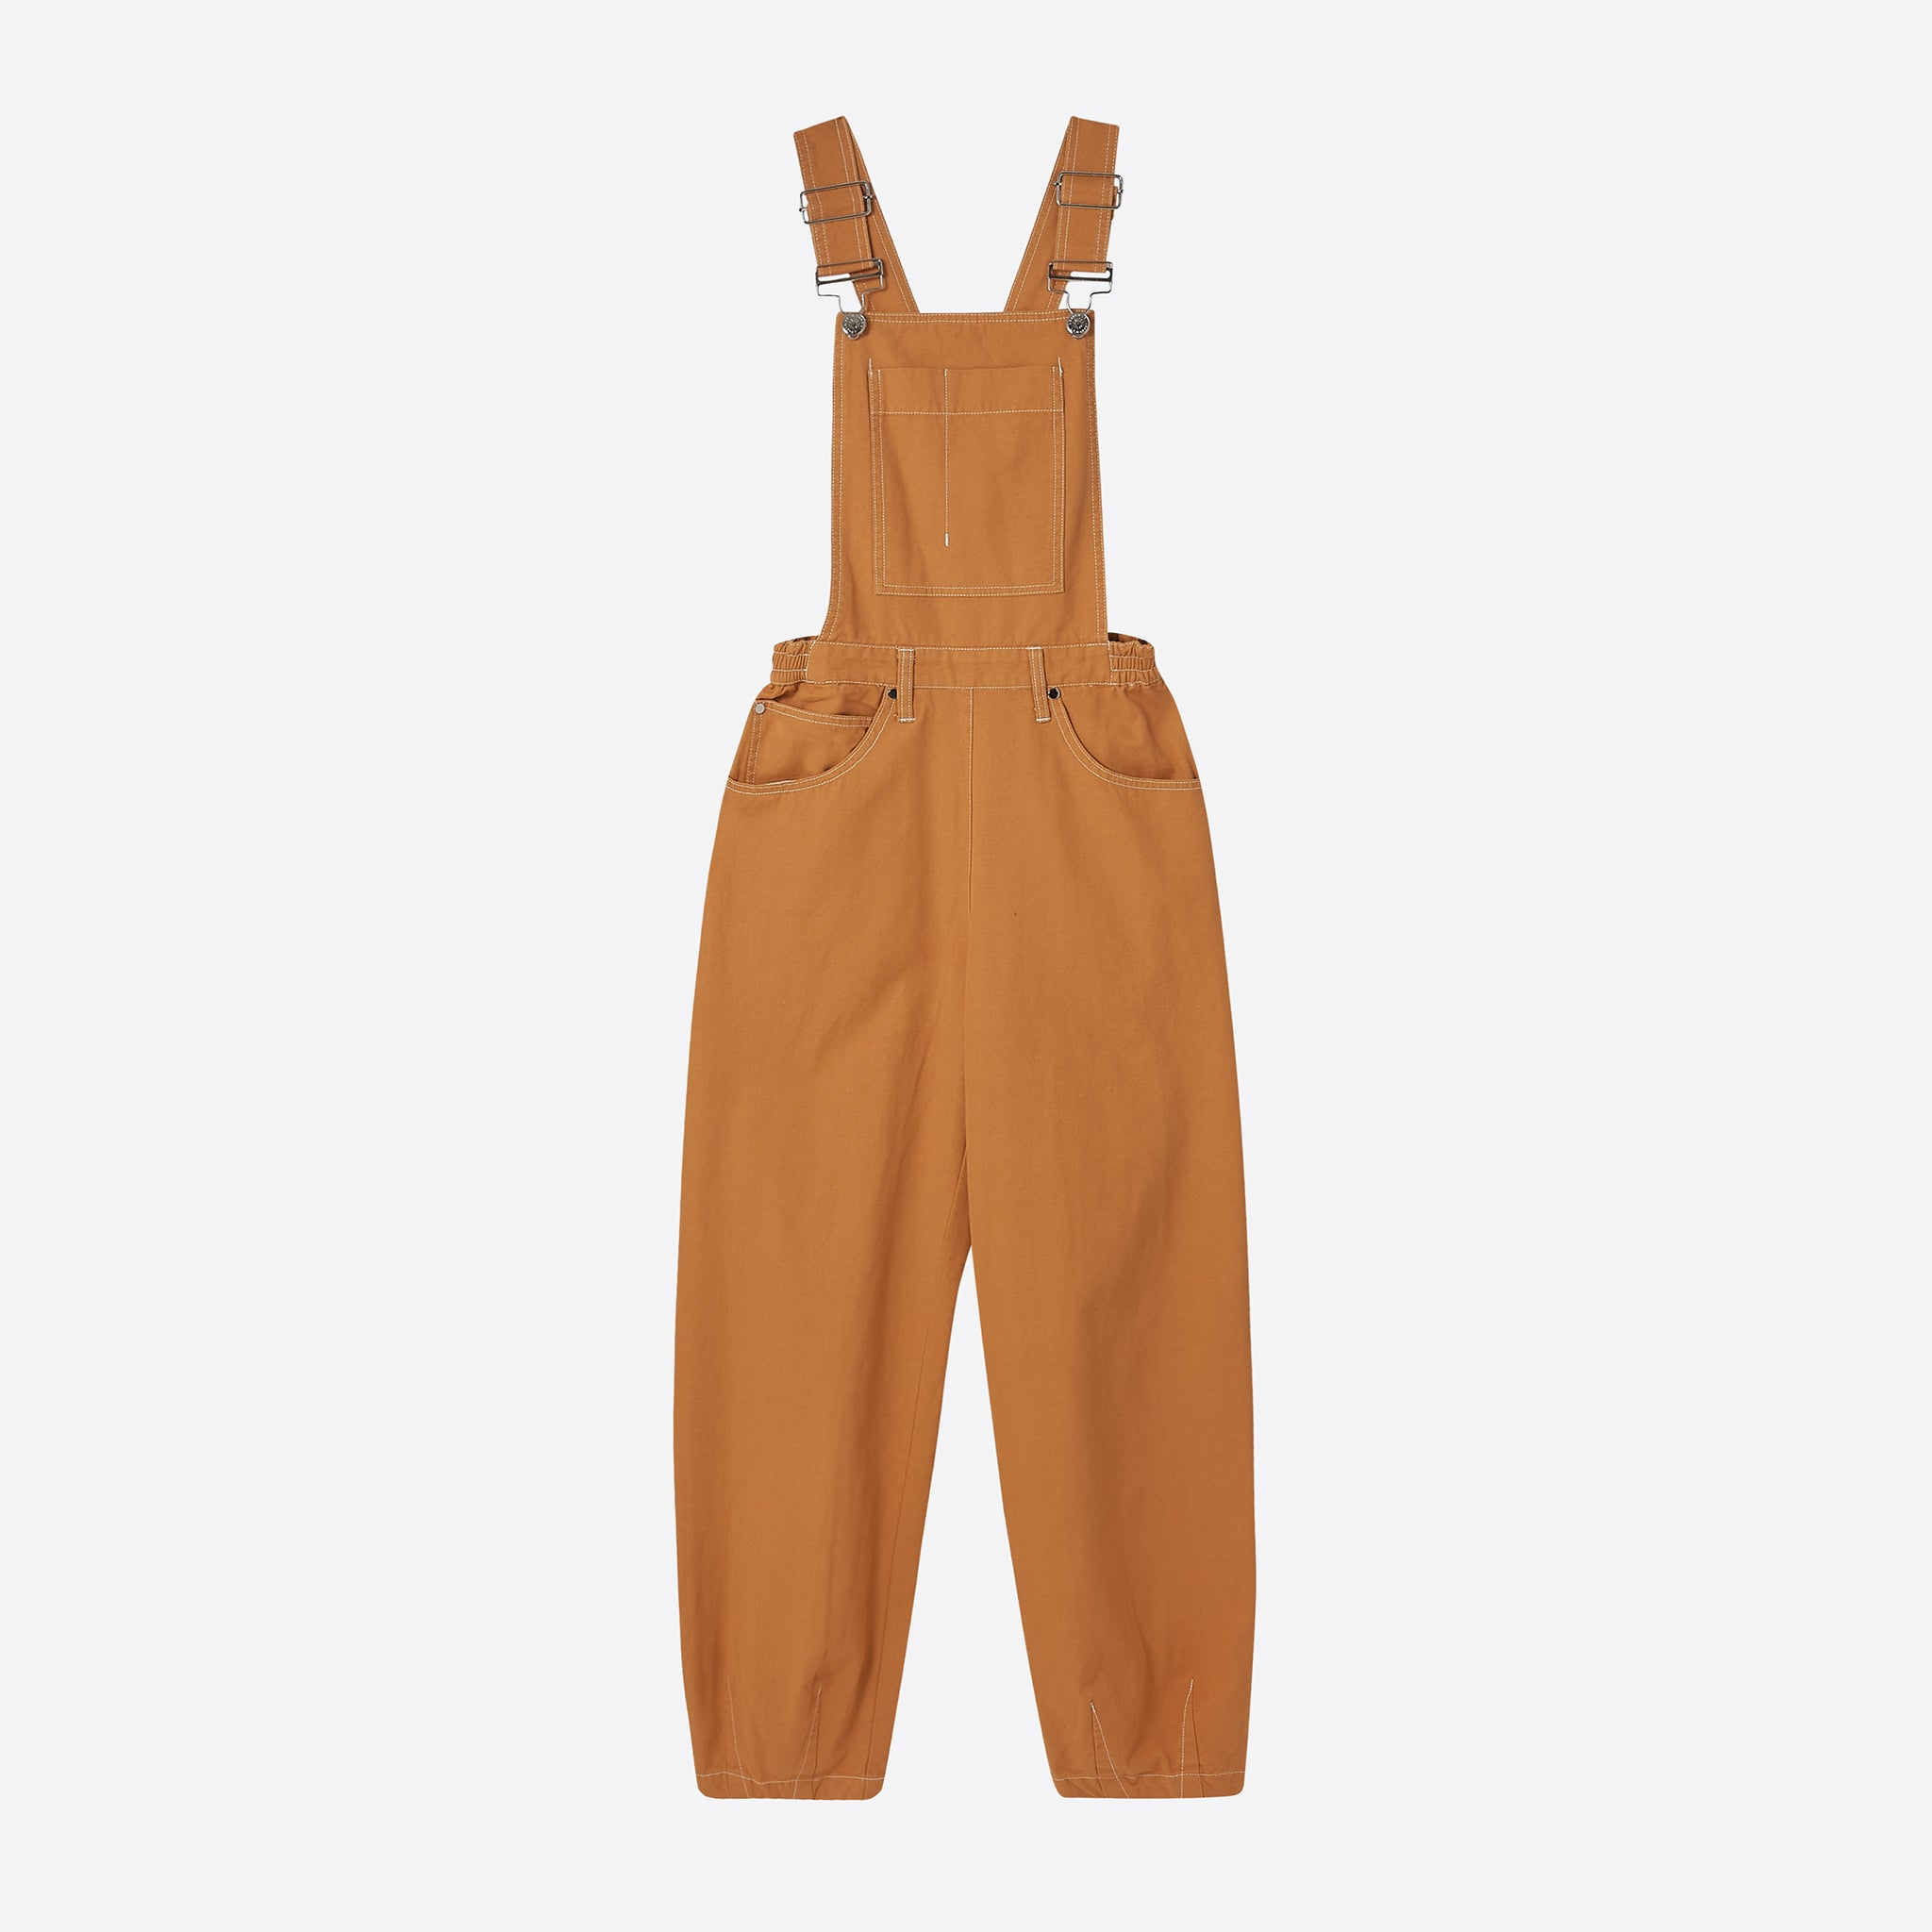 613a3e06aa4 LF Markey Fat Boys Dungarees in Camel — Our Daily Edit